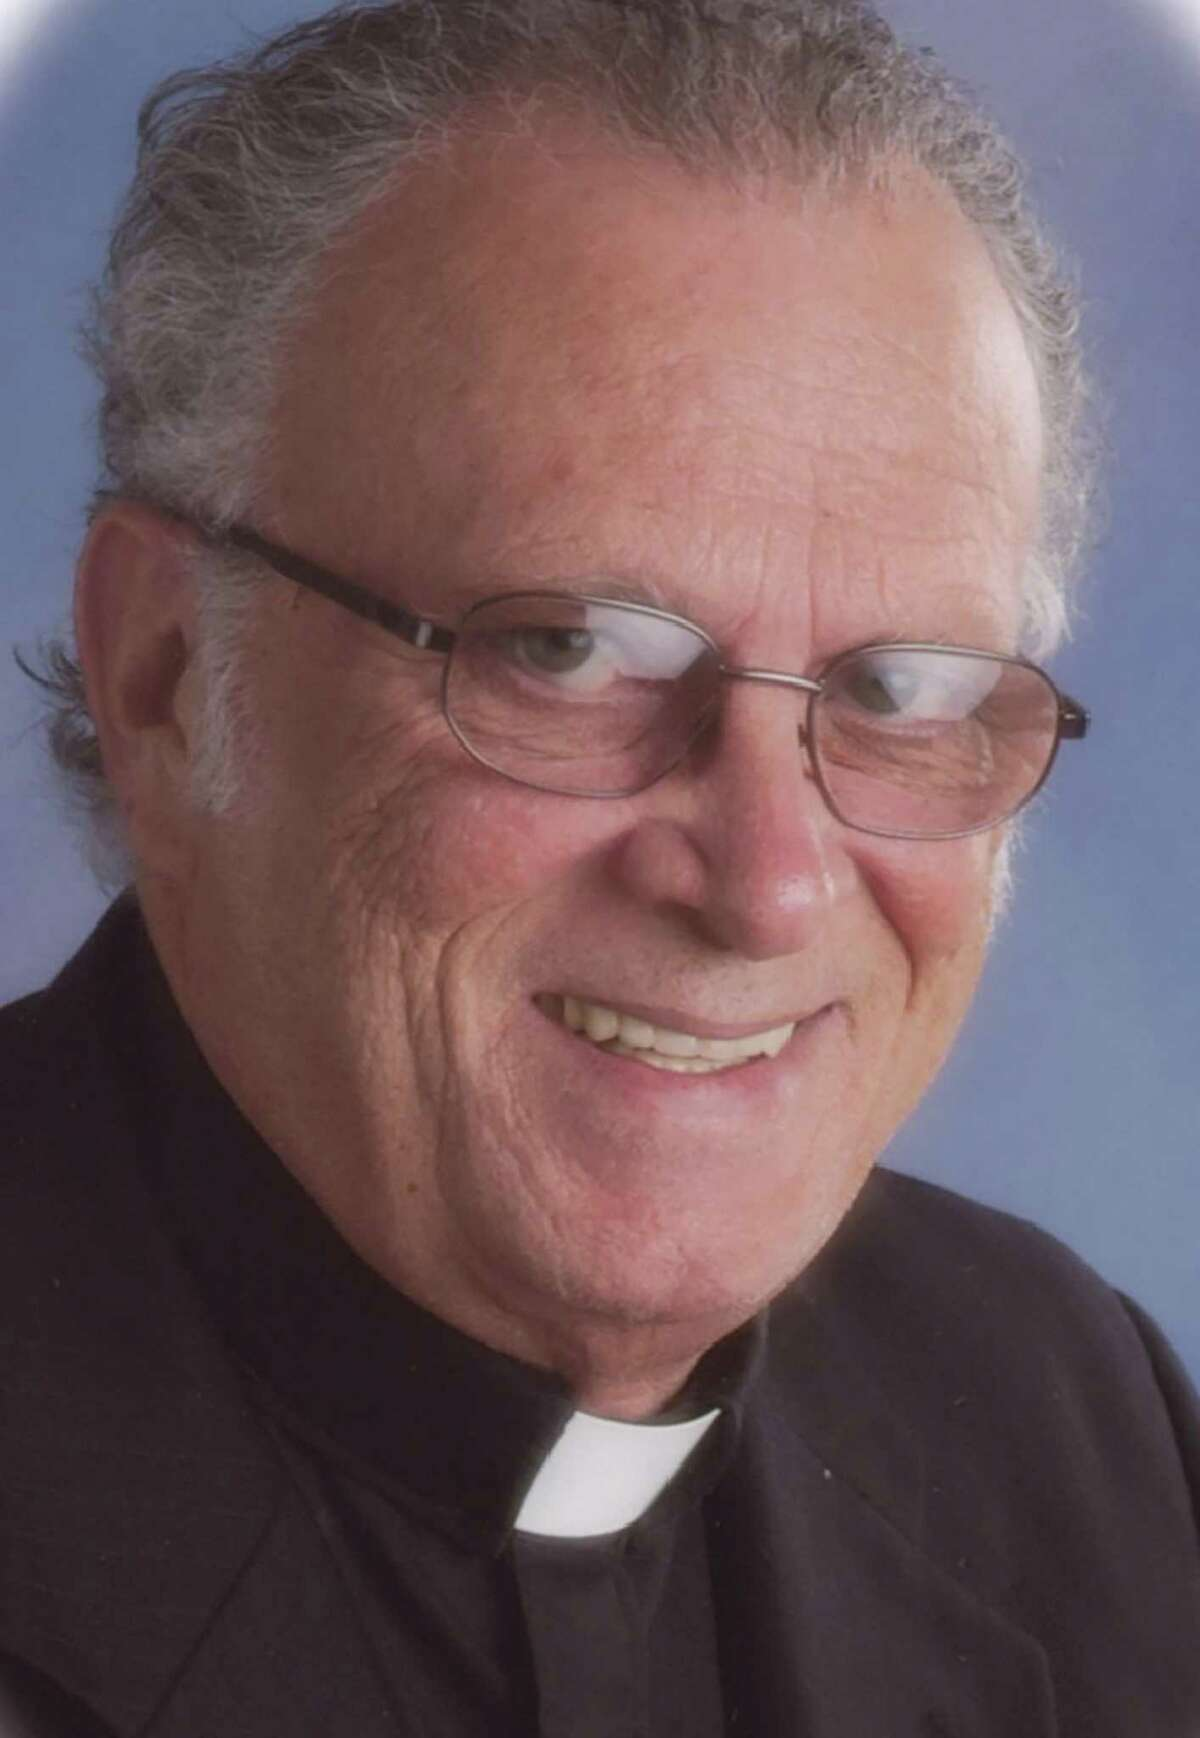 2011 State Poet Laureate Dave Parsons, of Conroe, wrote a poem about Sacred Heart Priest Hubert Kealy prior to Kealy's death in 2010. The poem is now included in a new anthology of Gulf Coast poetry.